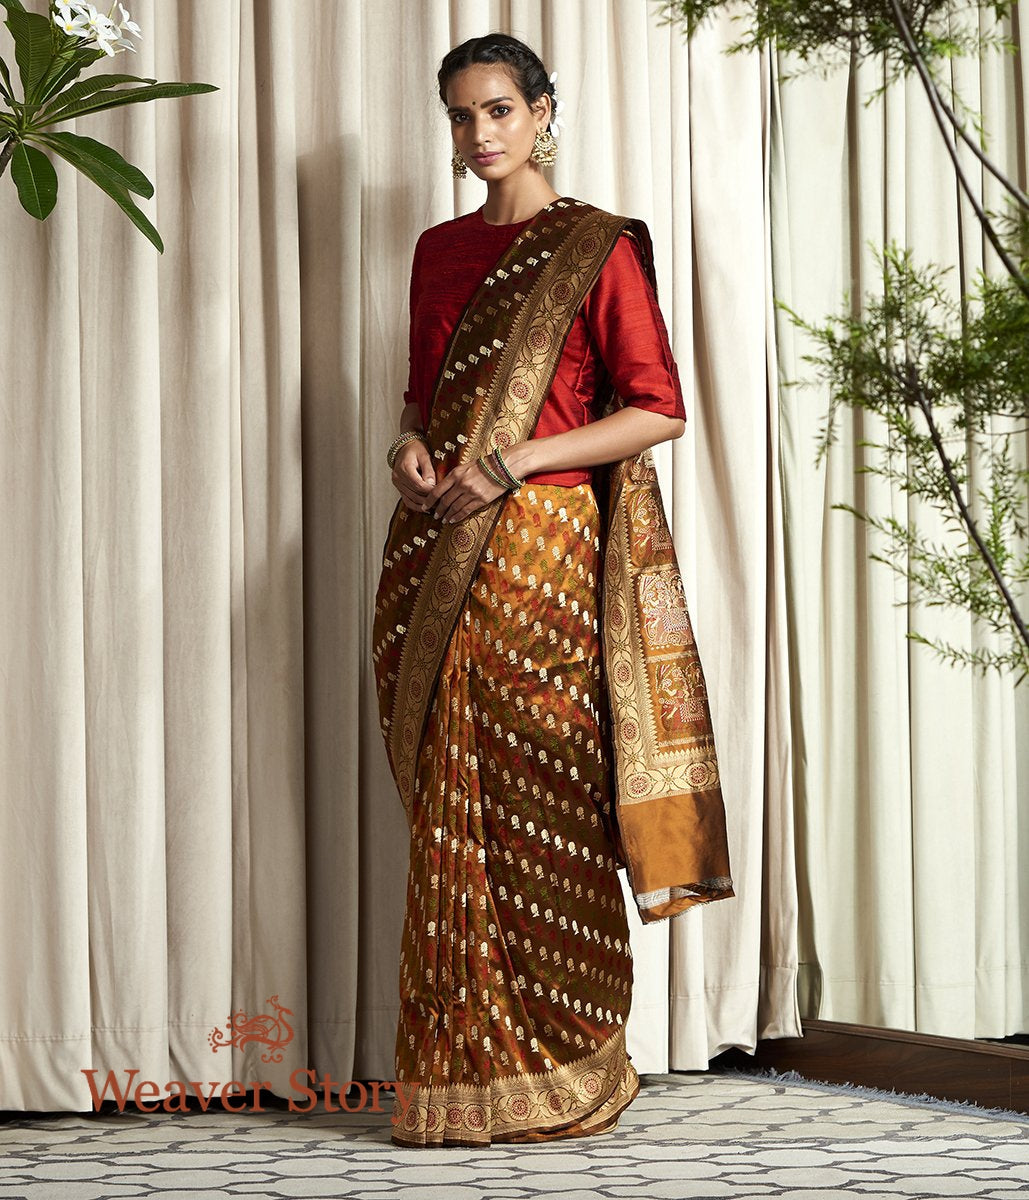 Handwoven Copper and Black Baluchari Saree with Elephant Pallu